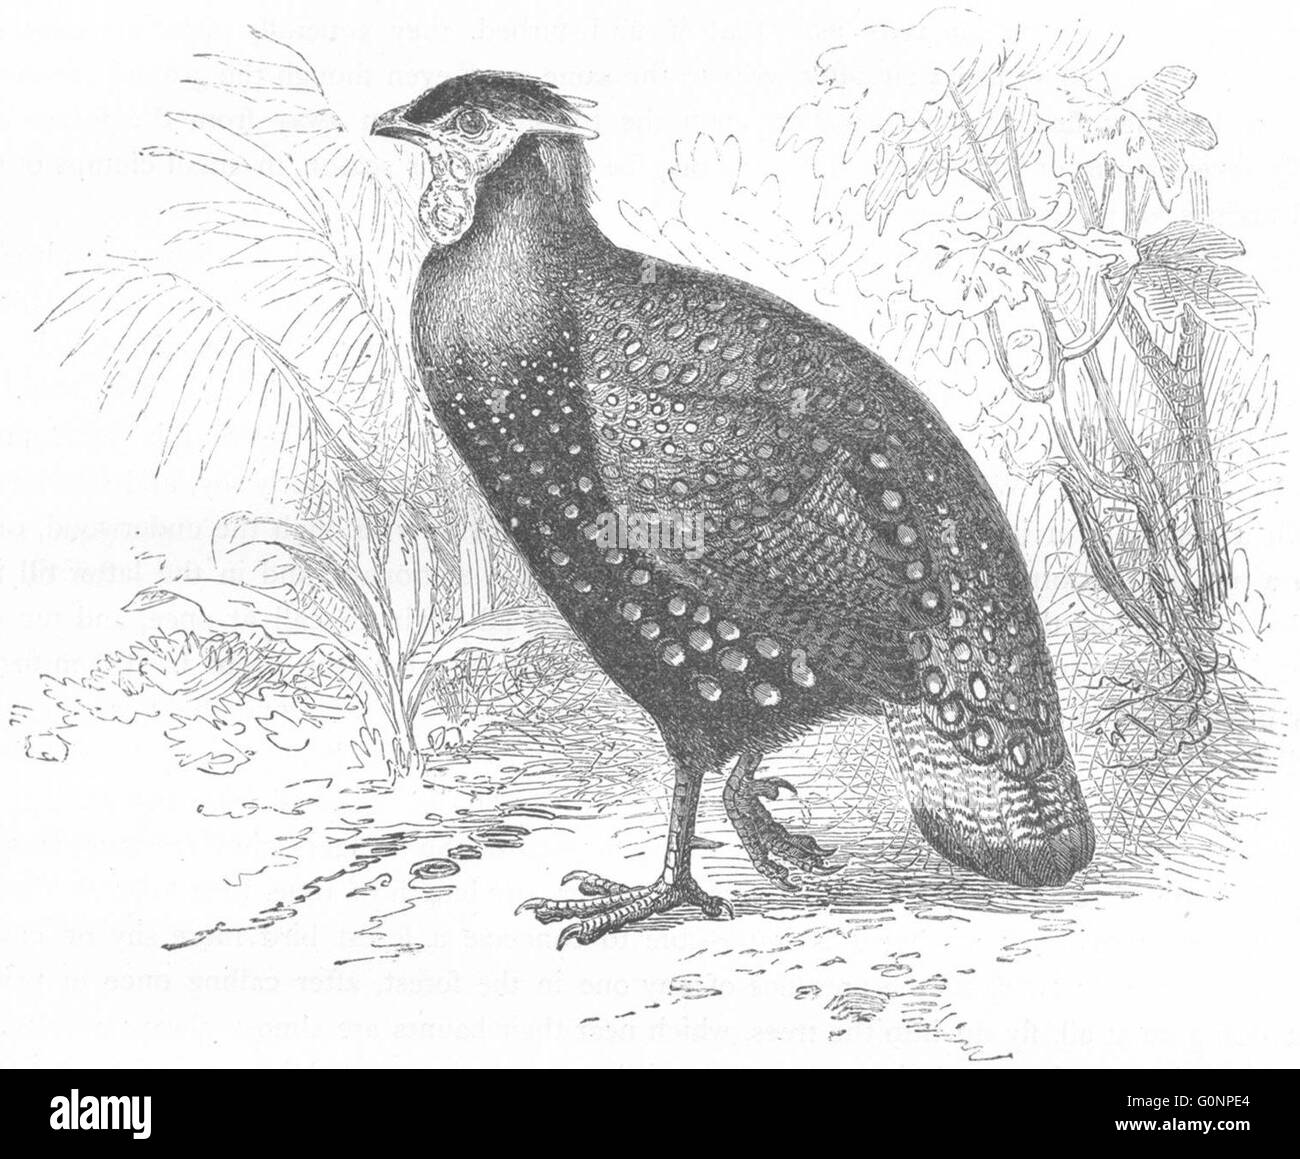 SIKKIM: Gallinaceous Phasianidae: Horned Pheasant, antique print c1870 - Stock Image